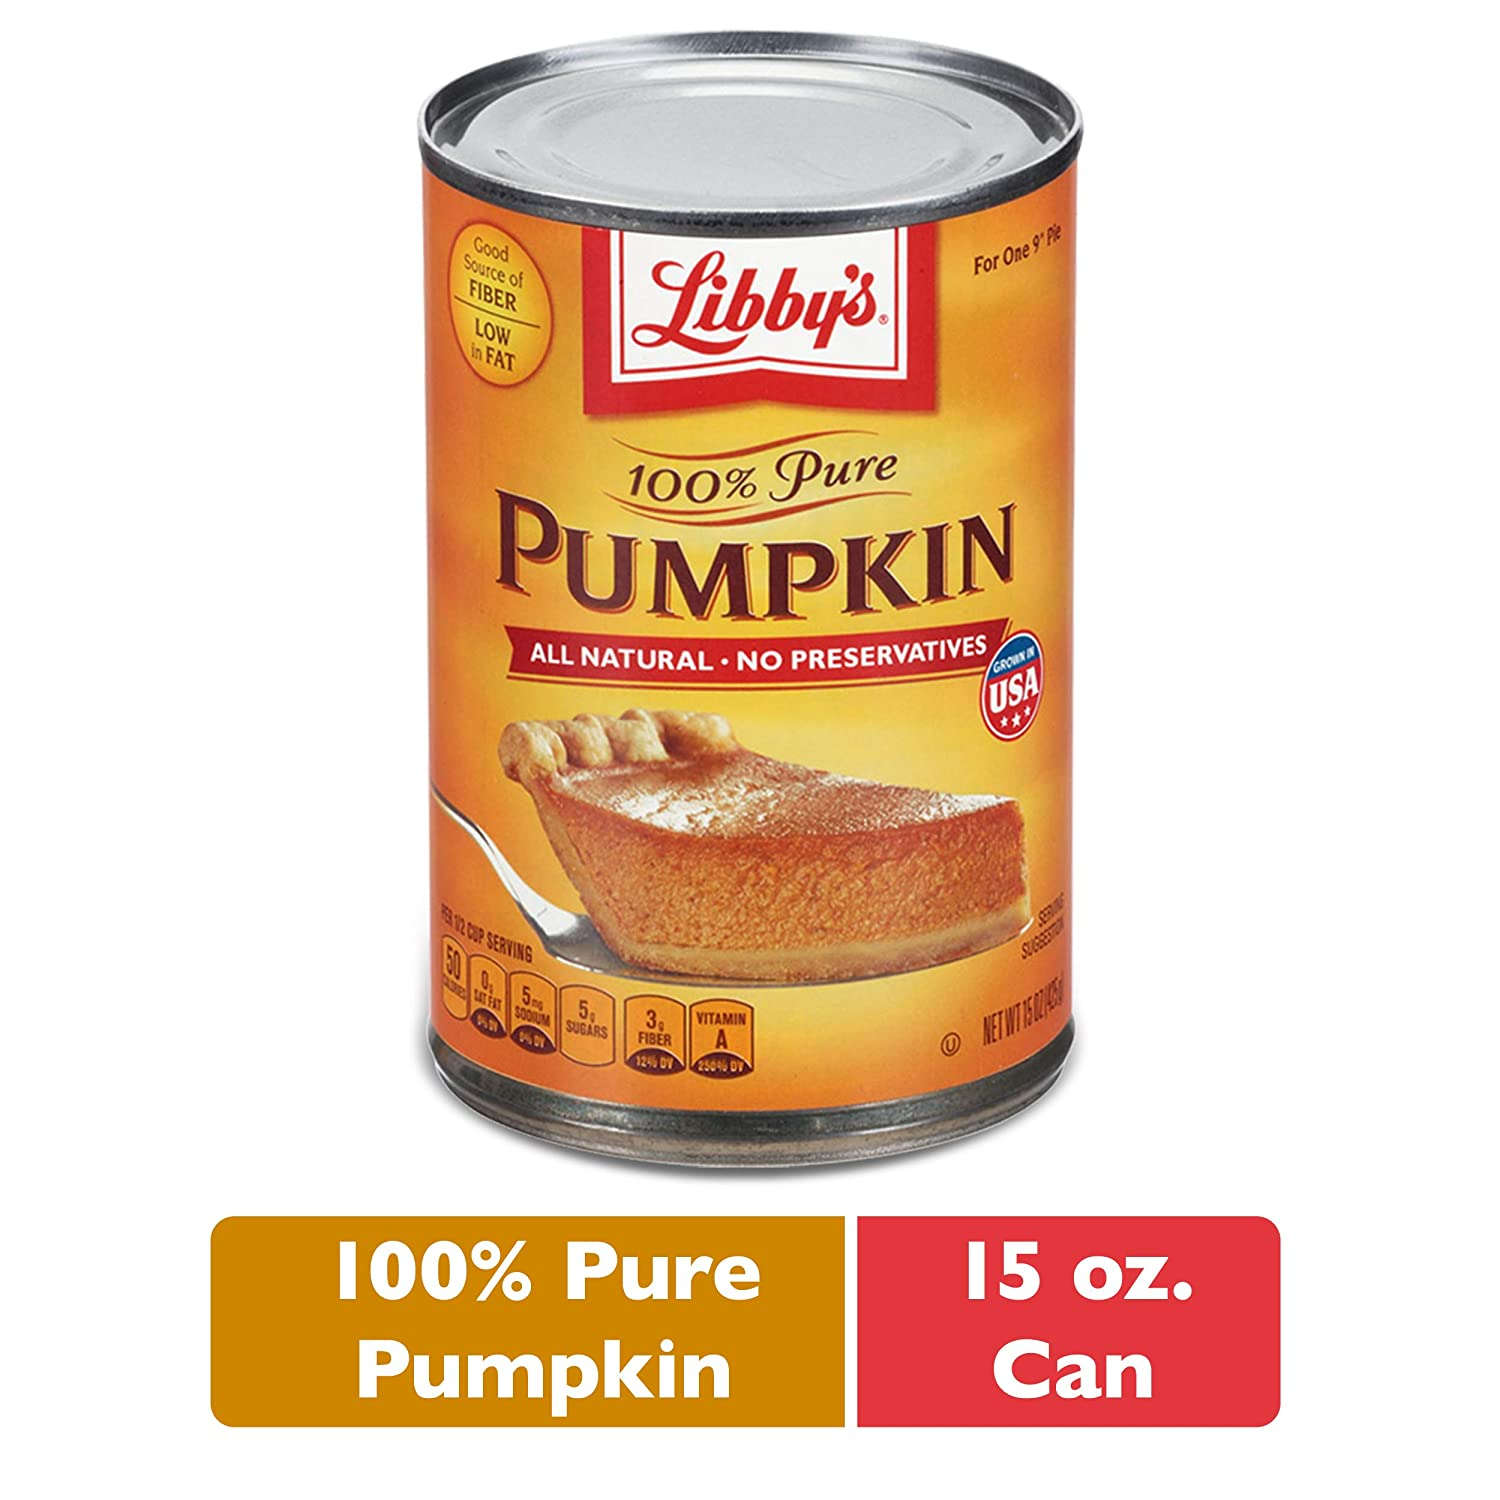 Nestle LIBBY'S 100% Pure Canned Pumpkin Puree, 15 oz. Can